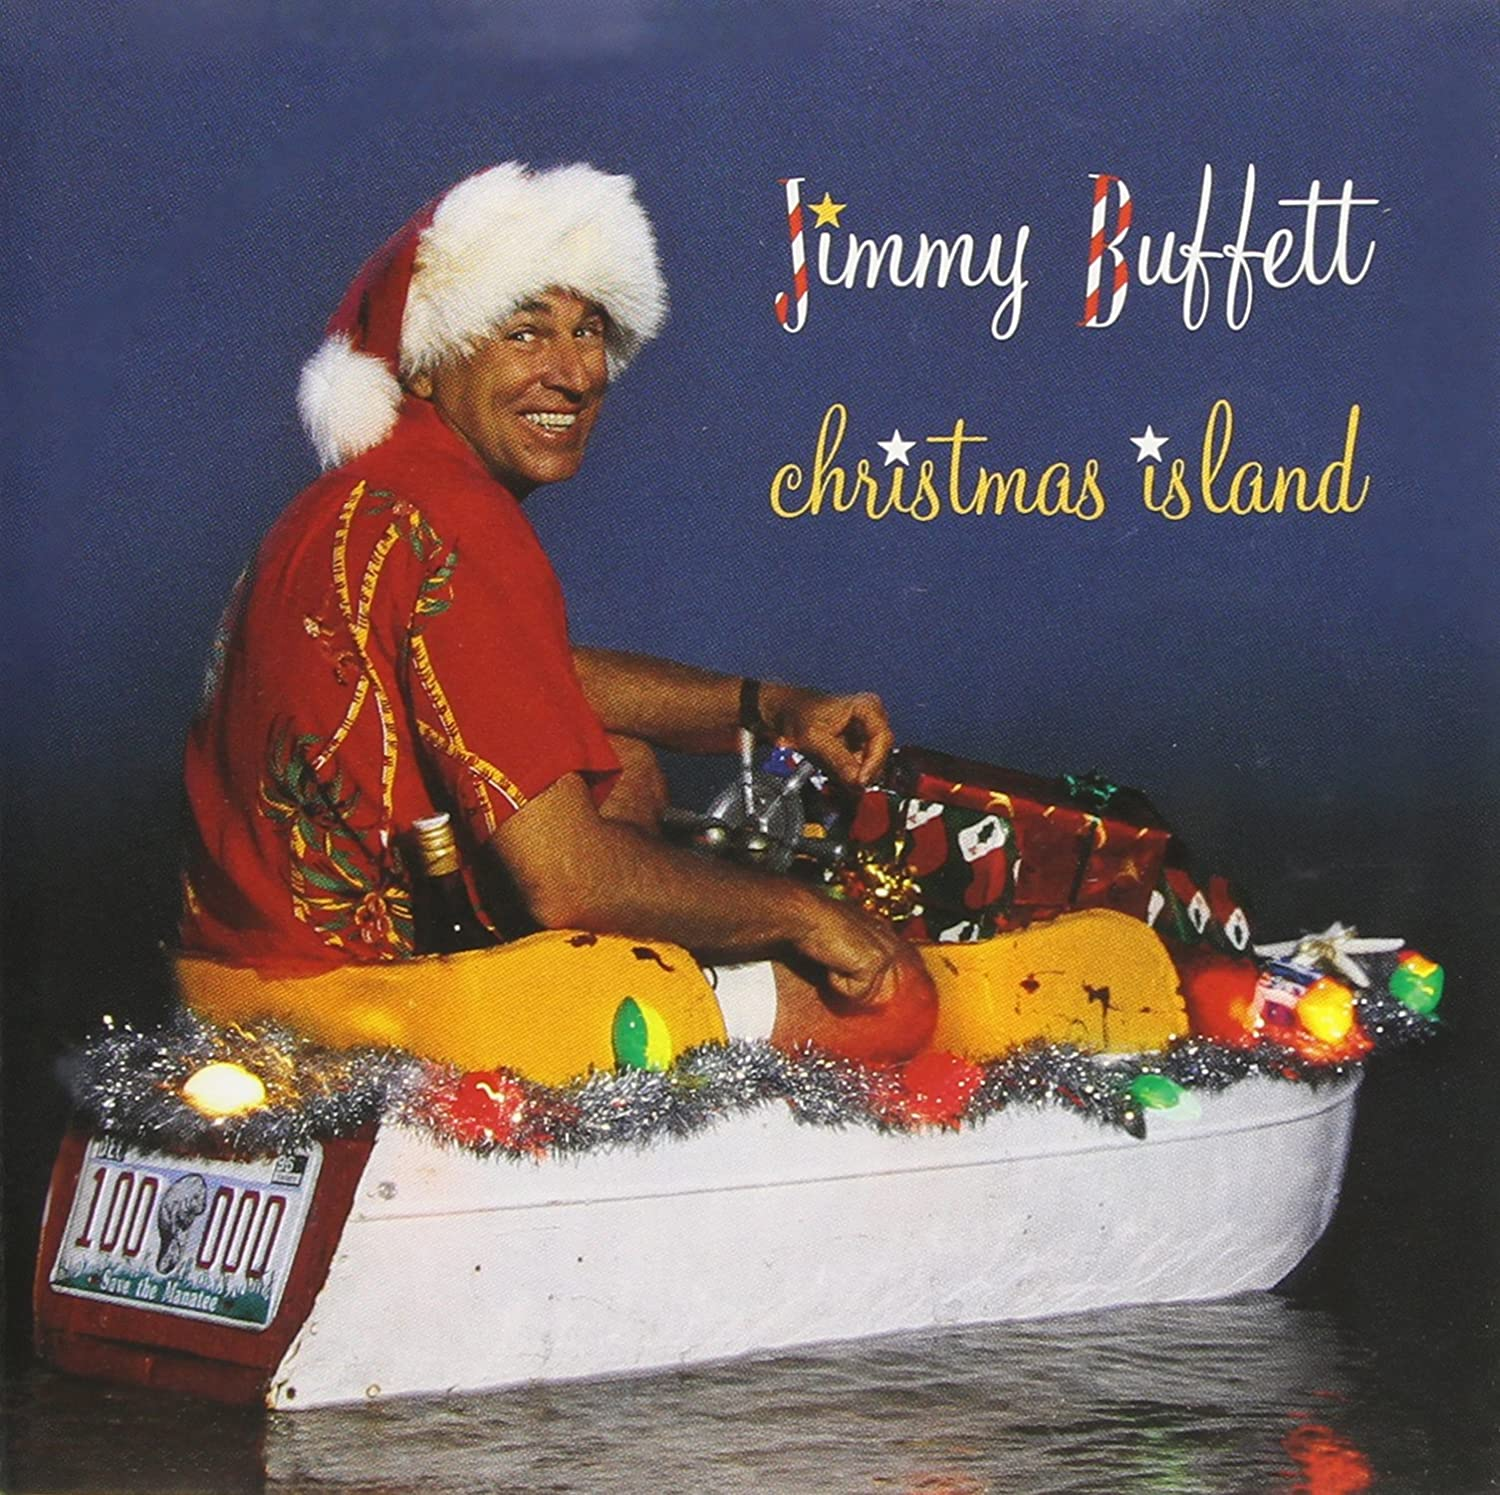 Jimmy Buffett - Christmas Island - Amazon.com Music